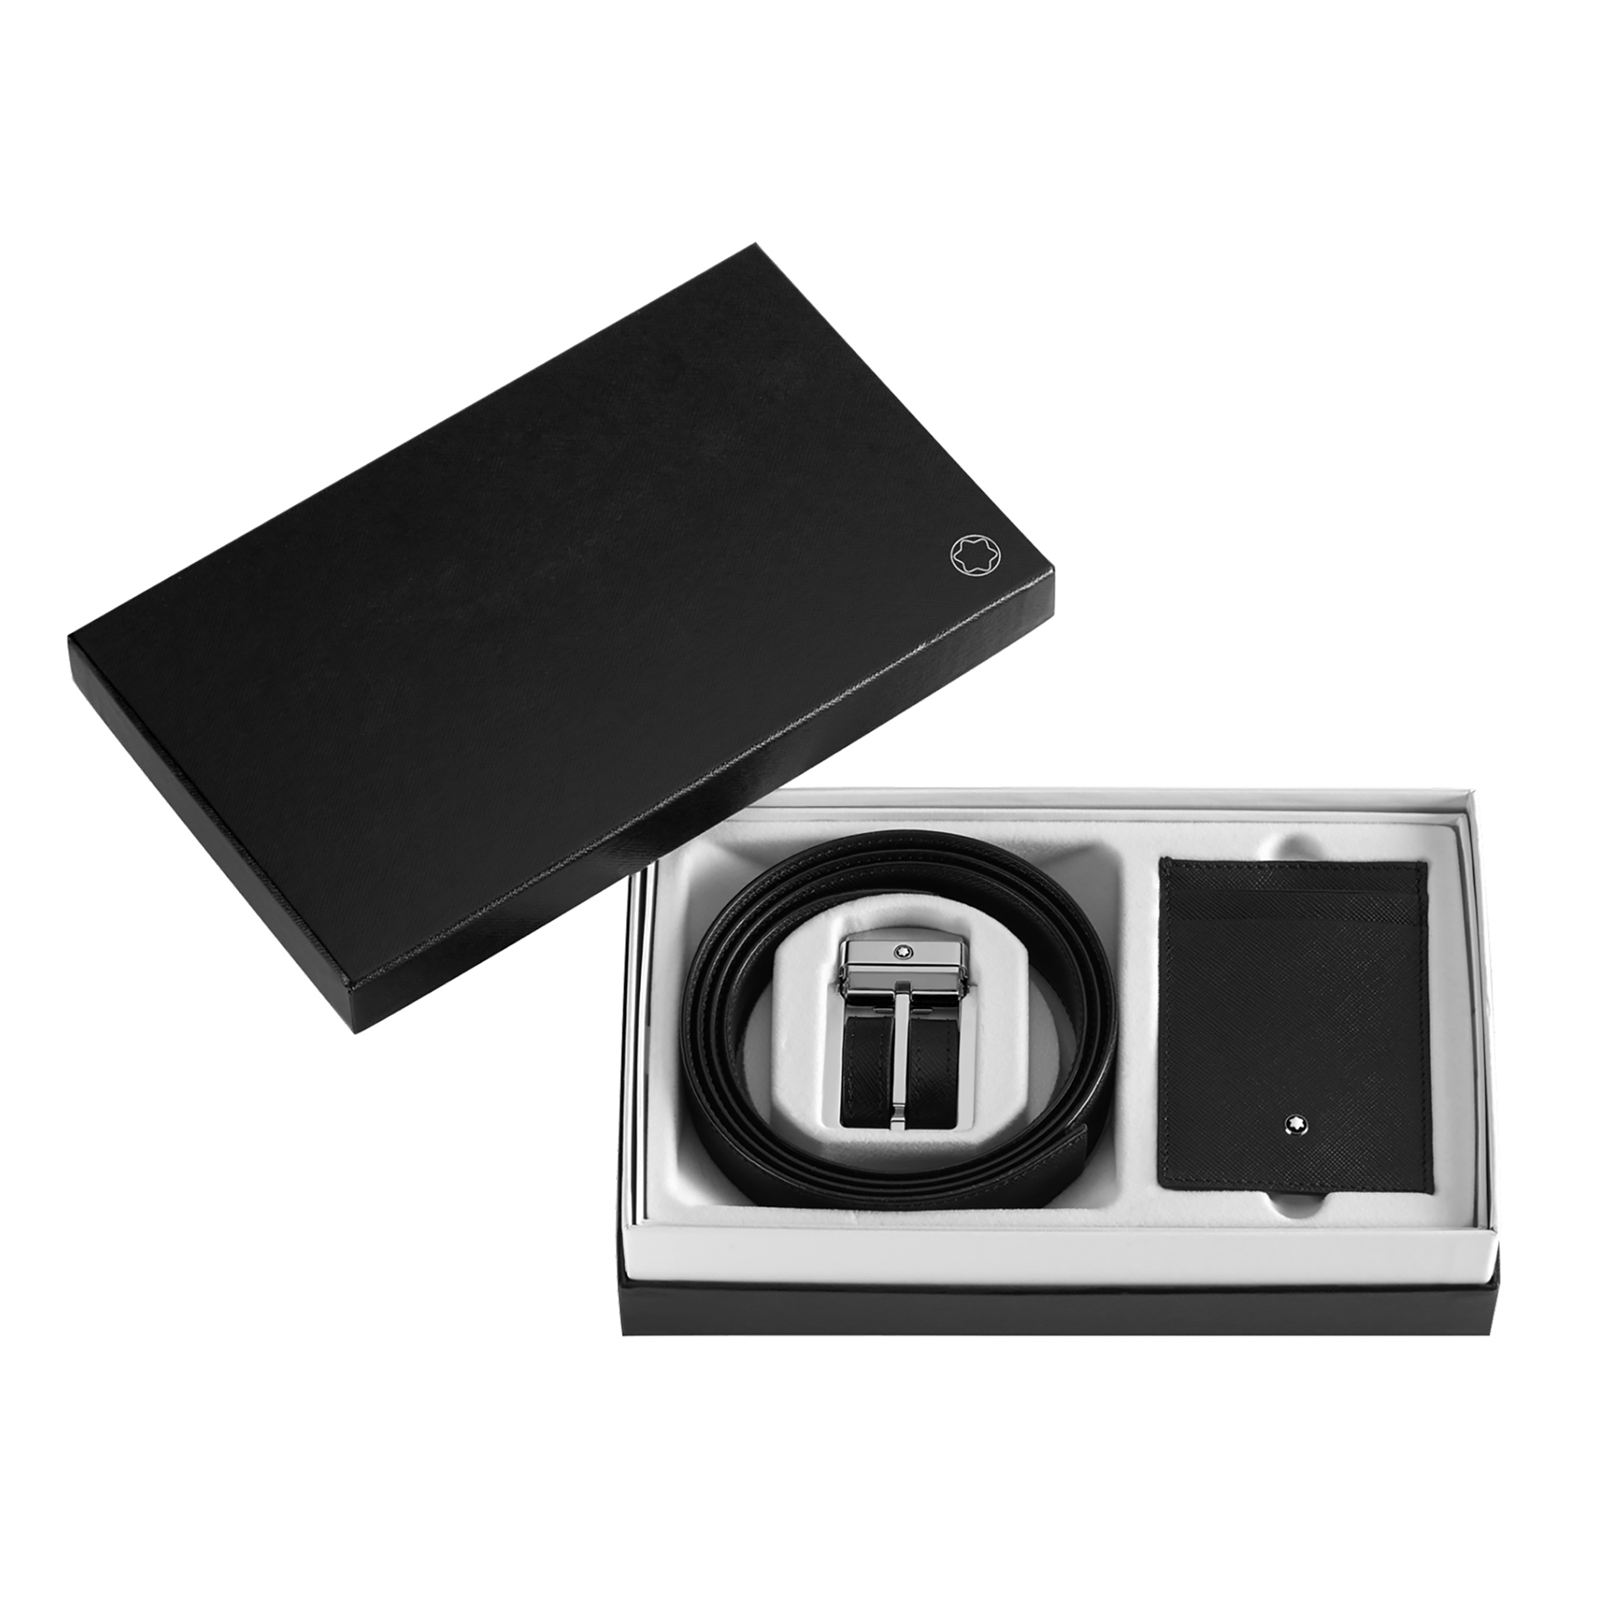 Montblanc Small Leather Goods & Belt Gift Set